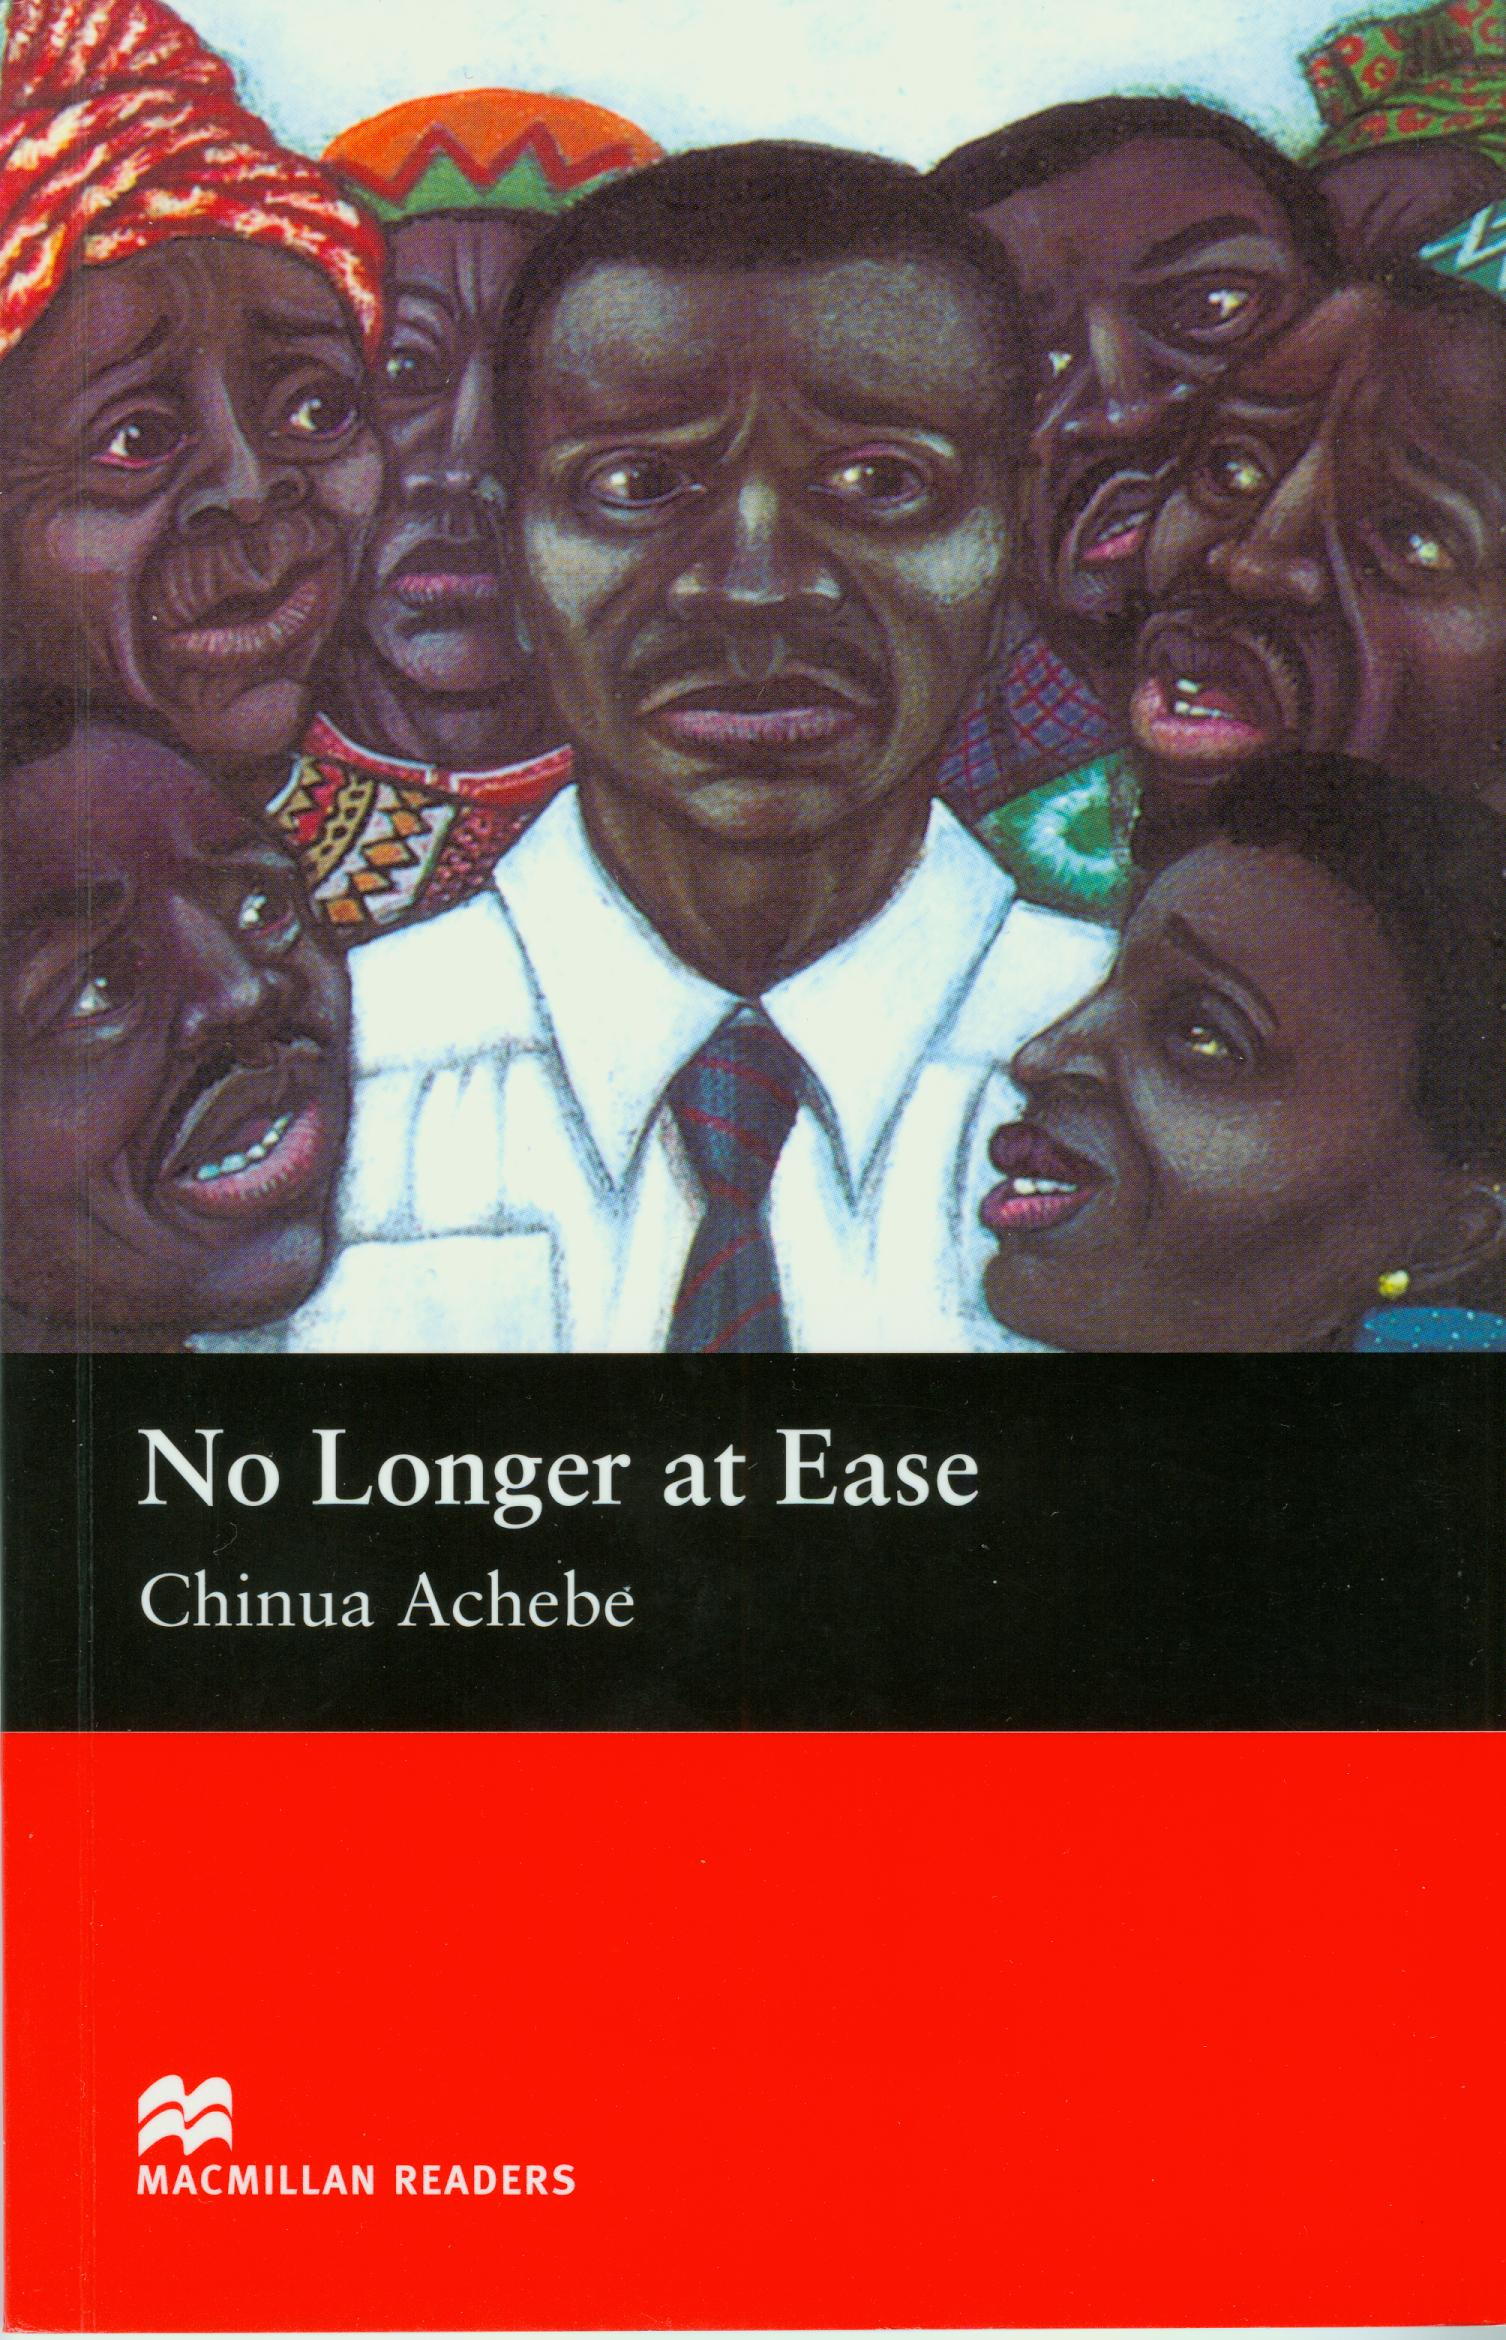 No longer at ease essay